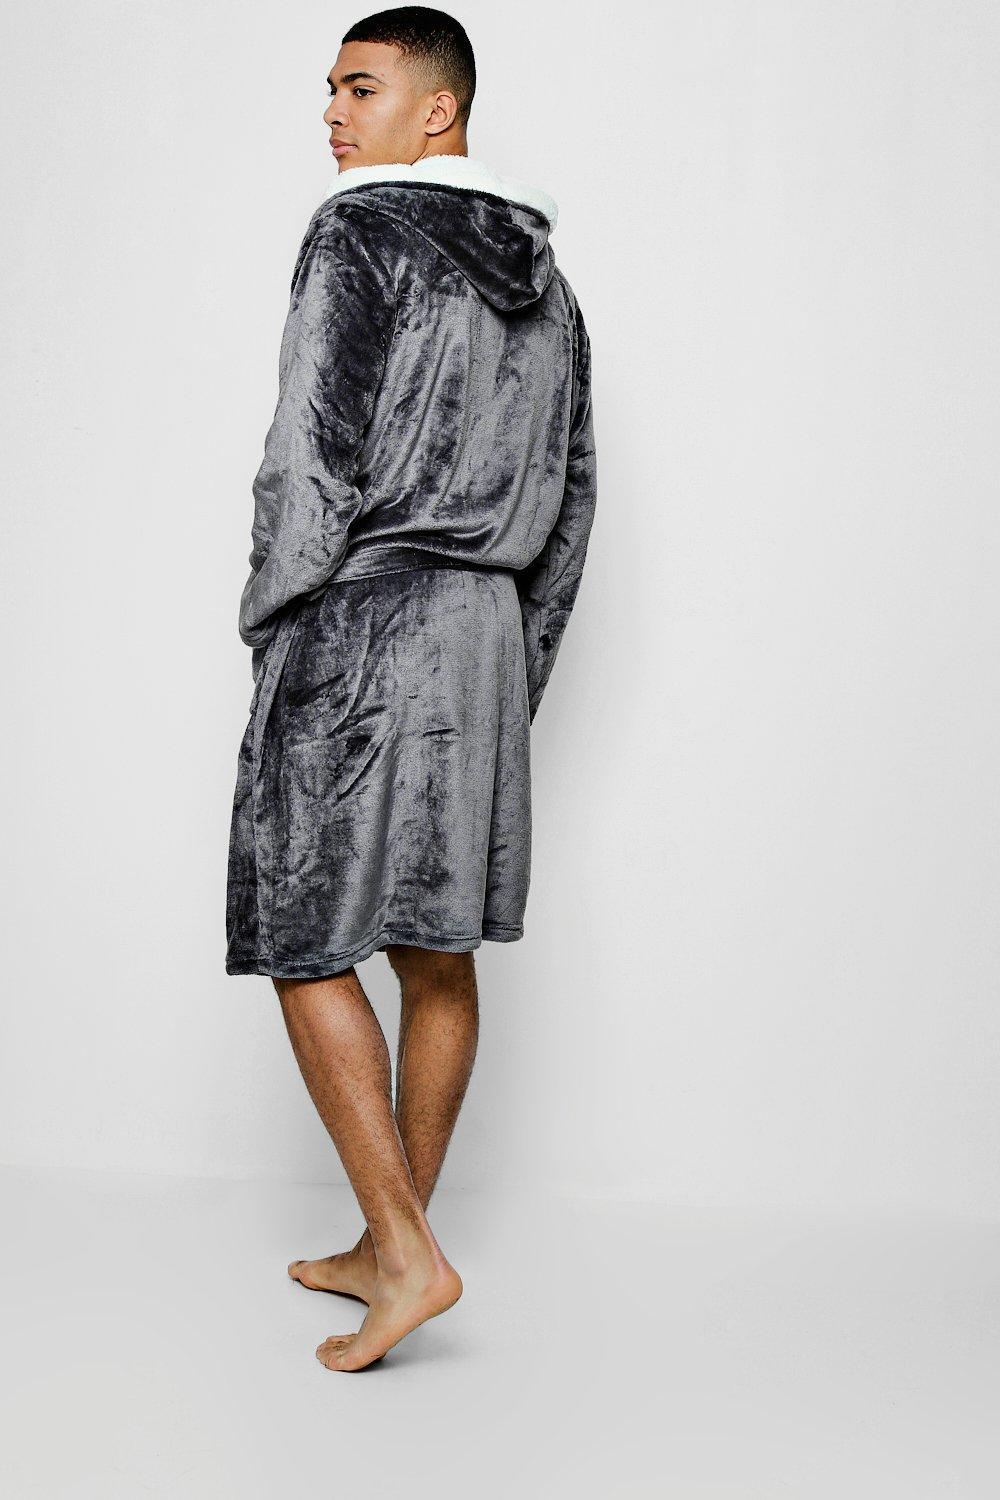 ccff48a781b7 Boohoo Hooded Fleece Robe With Sherpa Lining in Gray for Men - Lyst